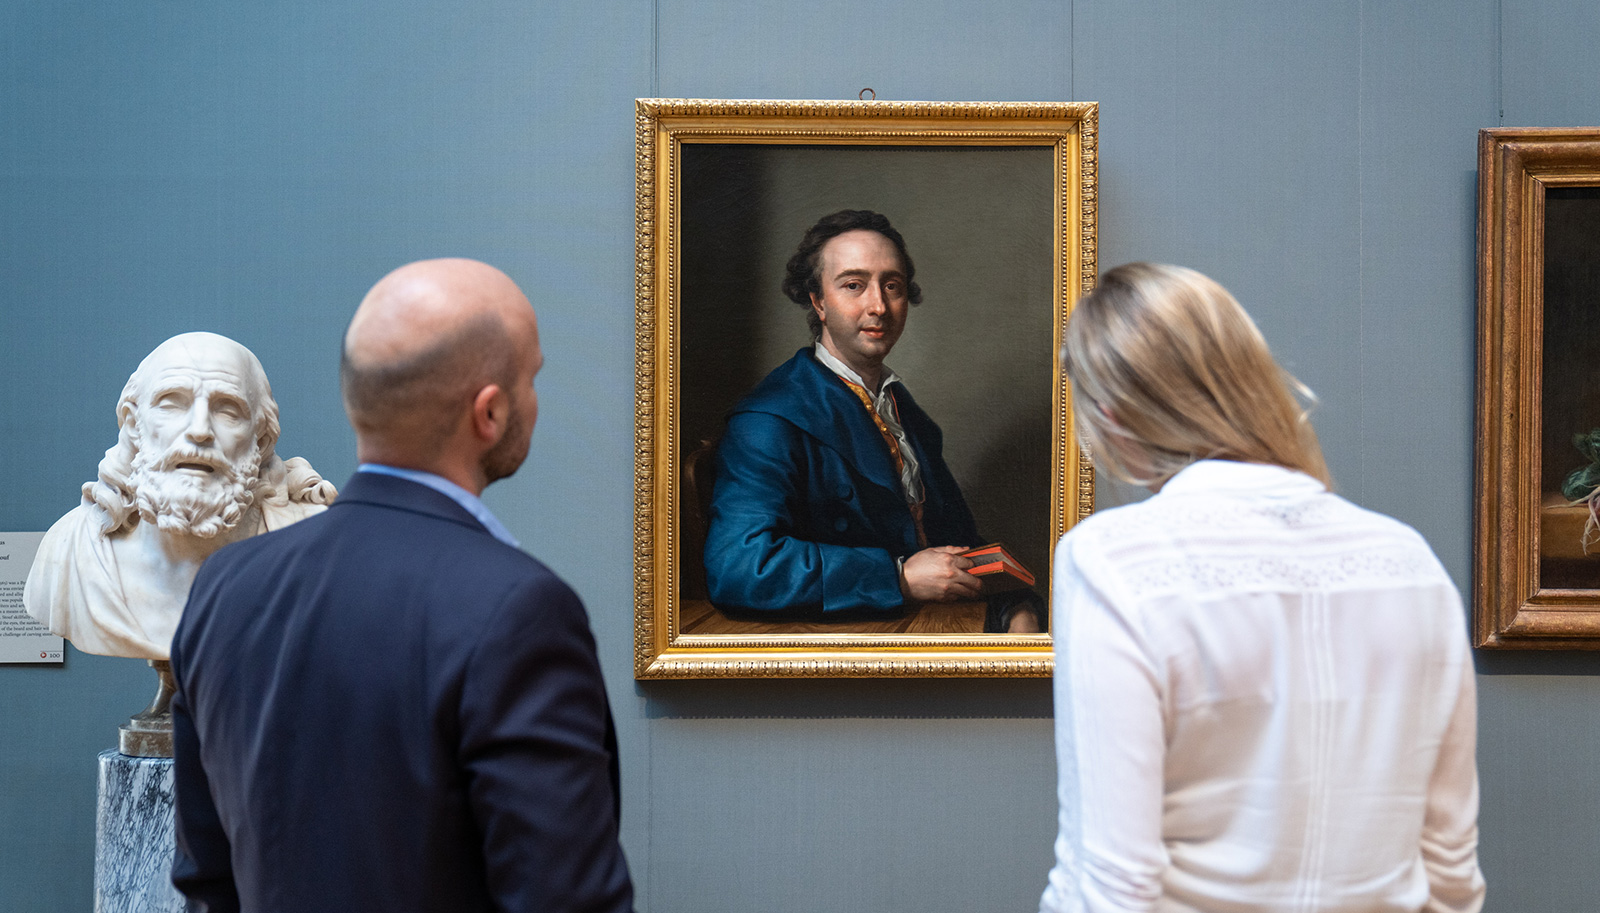 Two people looking at the new portait of a seated man in a blue coat.